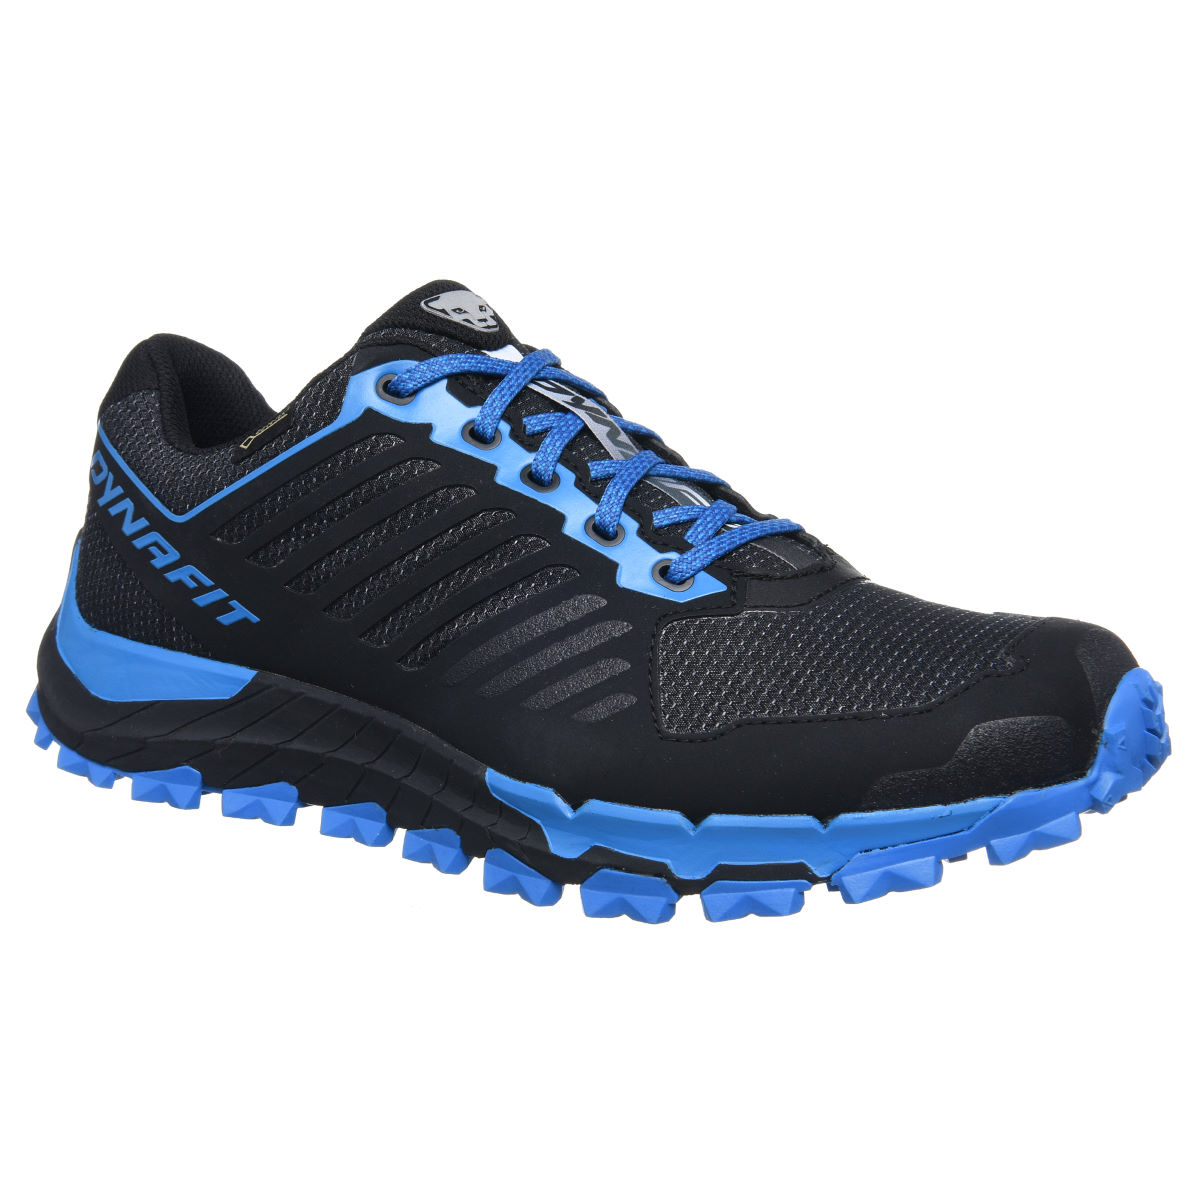 Zapatillas Dynafit Trailbreaker GTX - Zapatillas de trail running